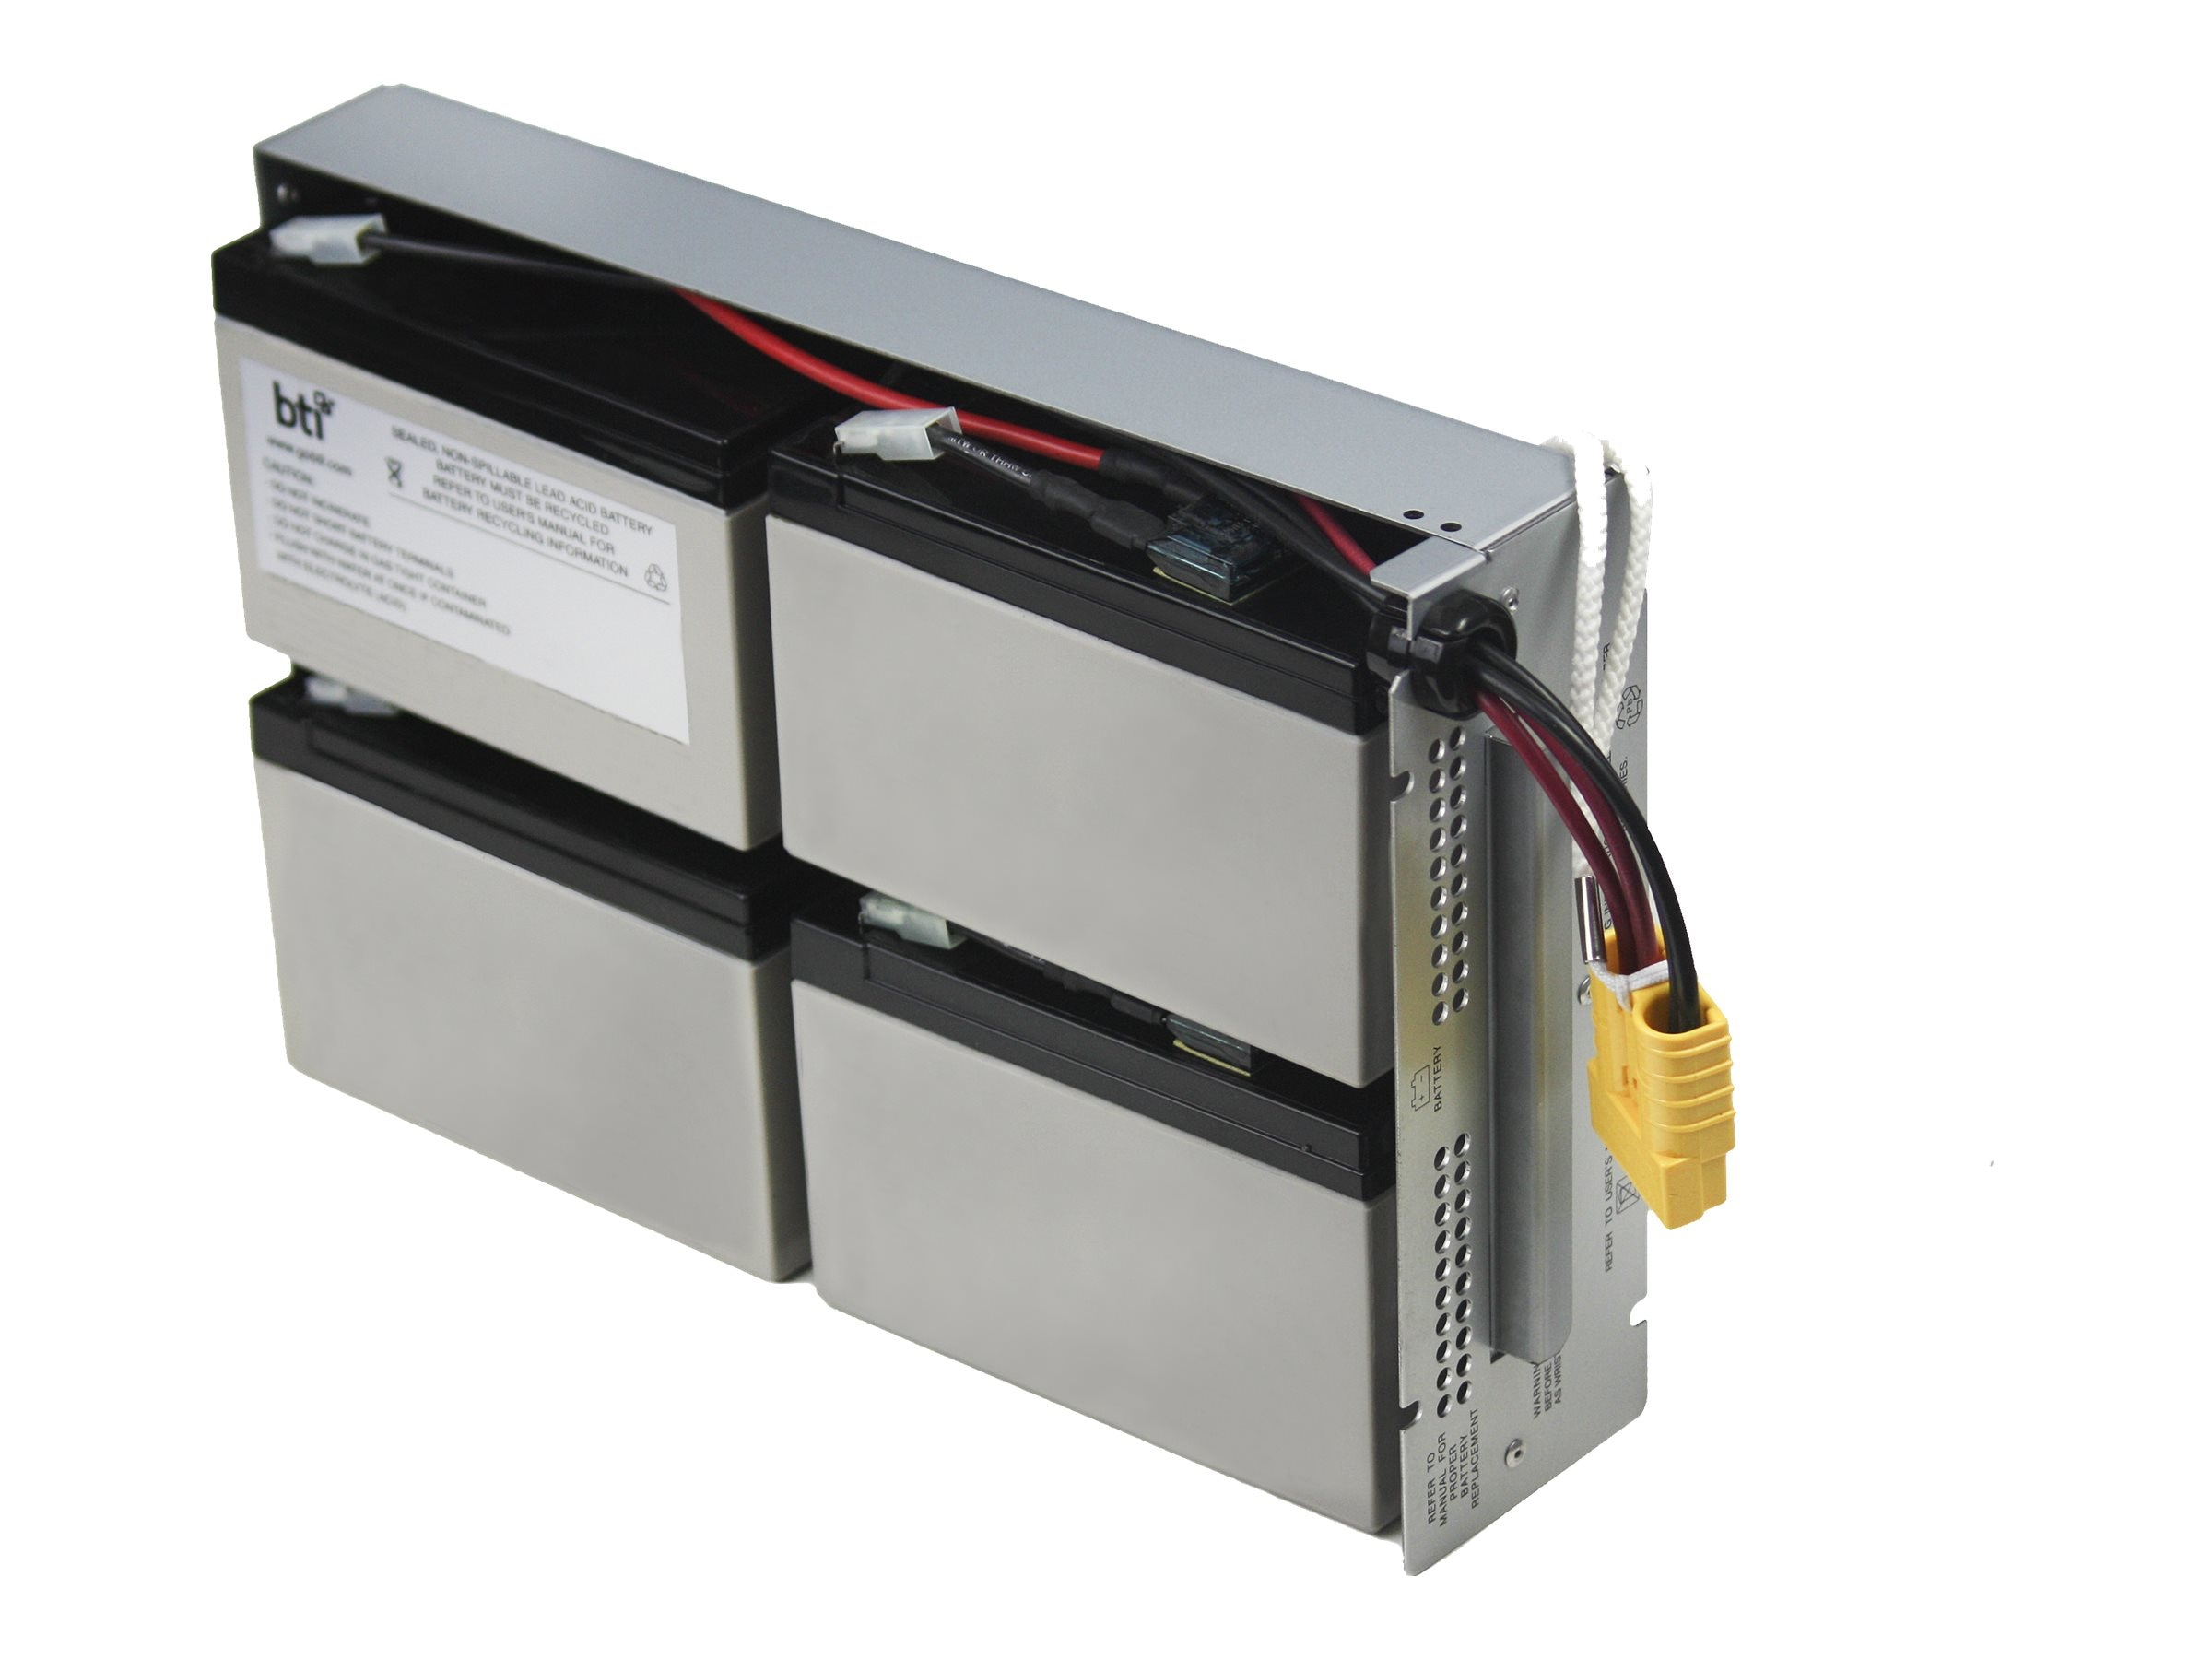 BTI Replacement Battery, RBC24, for APC SU1400RM2U, SUA1500RM2U, DLA1500RM2U Models